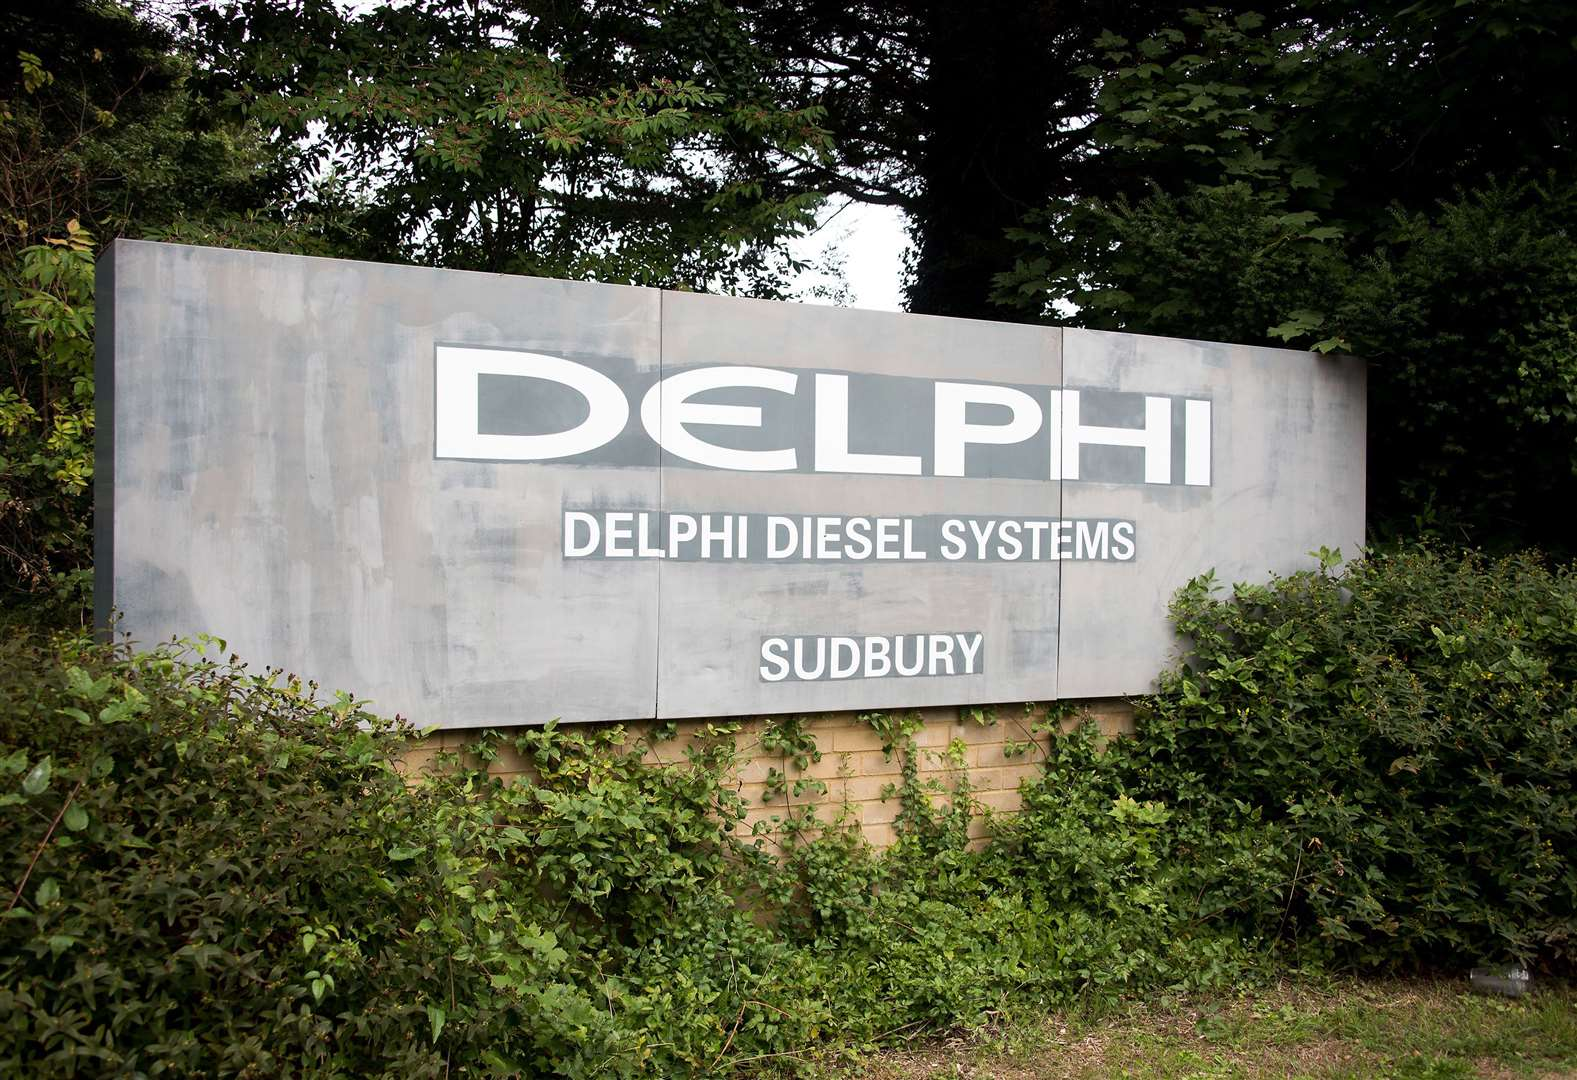 Babergh leader voices preference for keeping Delphi site in Sudbury for industrial use